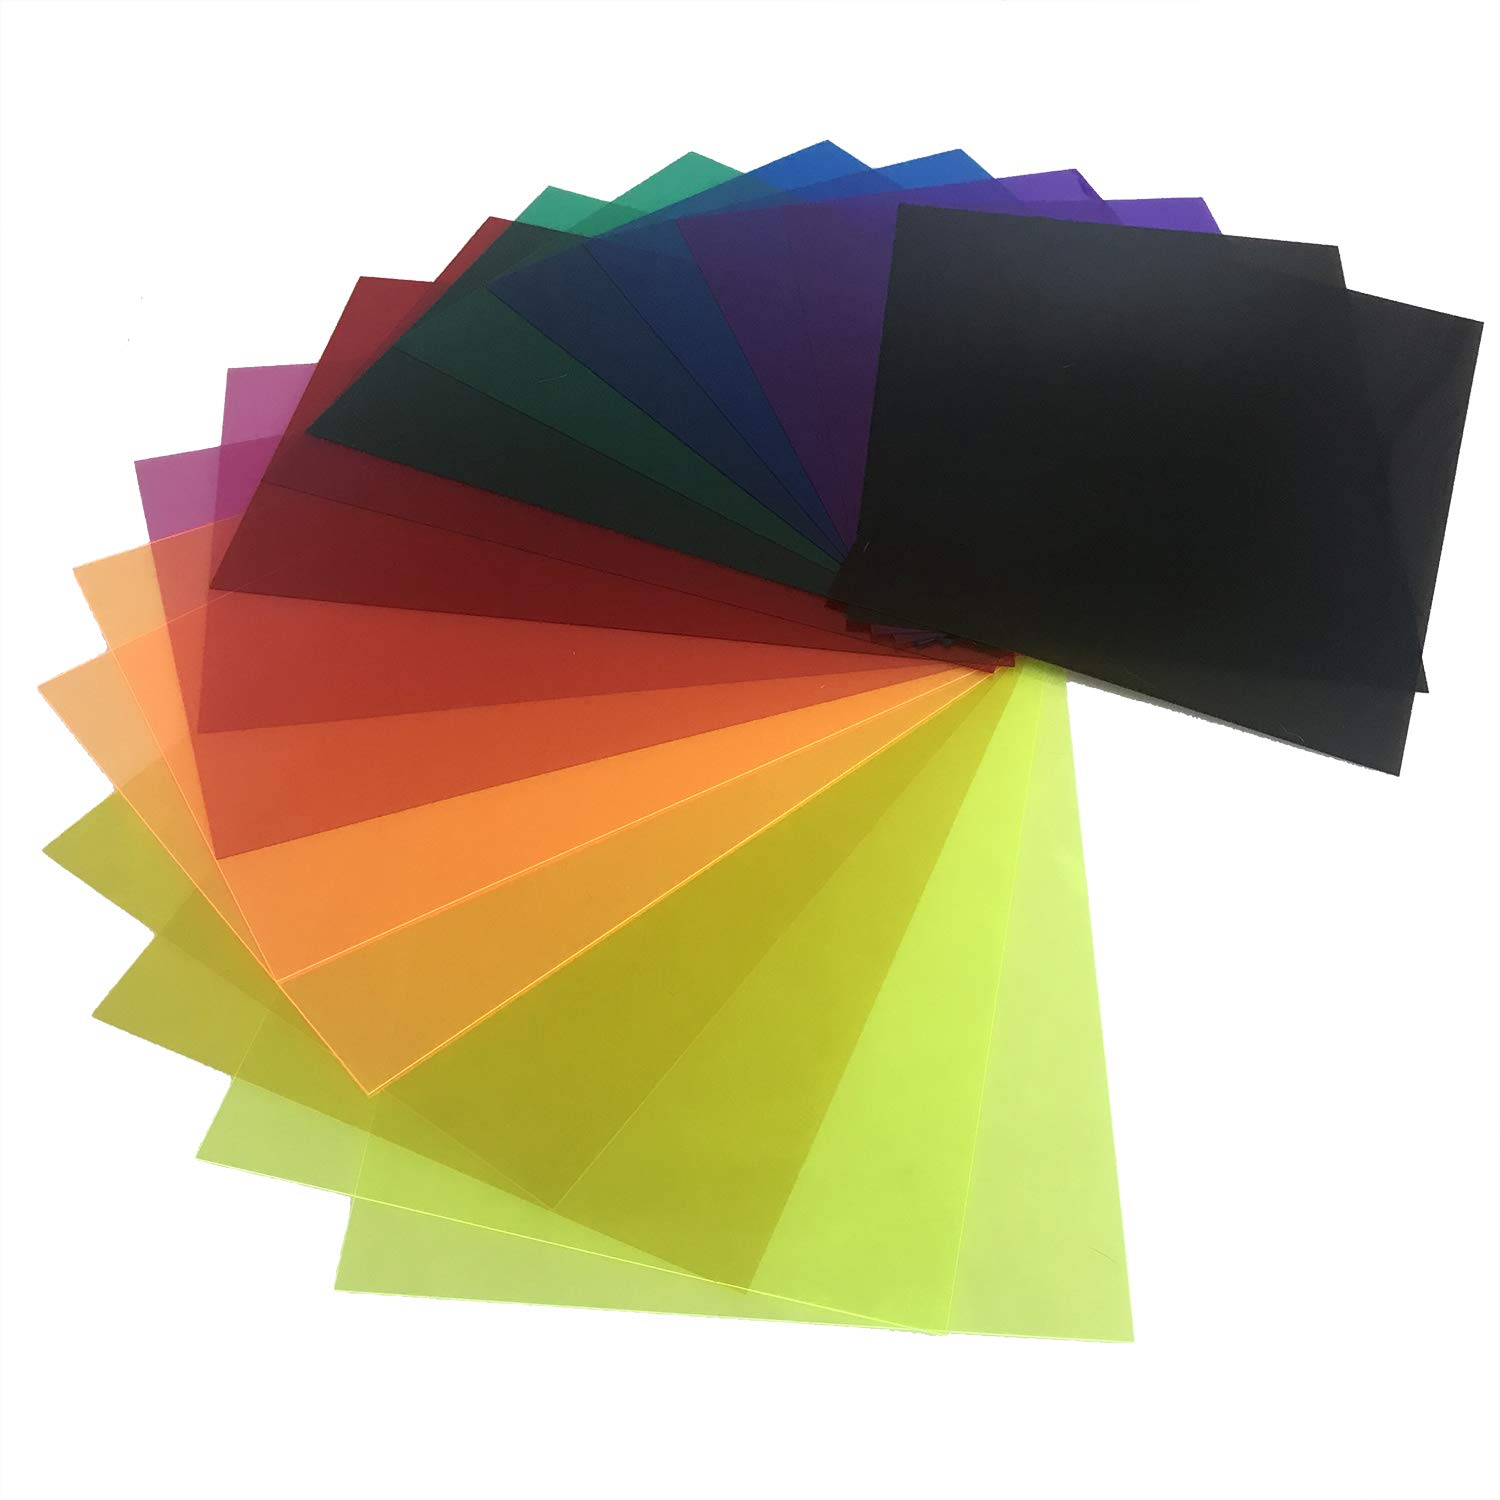 Initial heart 18 Pack Correction Gel Light Filter Sheet Colored Overlays Transparency Color Film Plastic Sheets 11.7 by 8.3 Inches 9 Assorted Colors 2 Sets by Initial heart